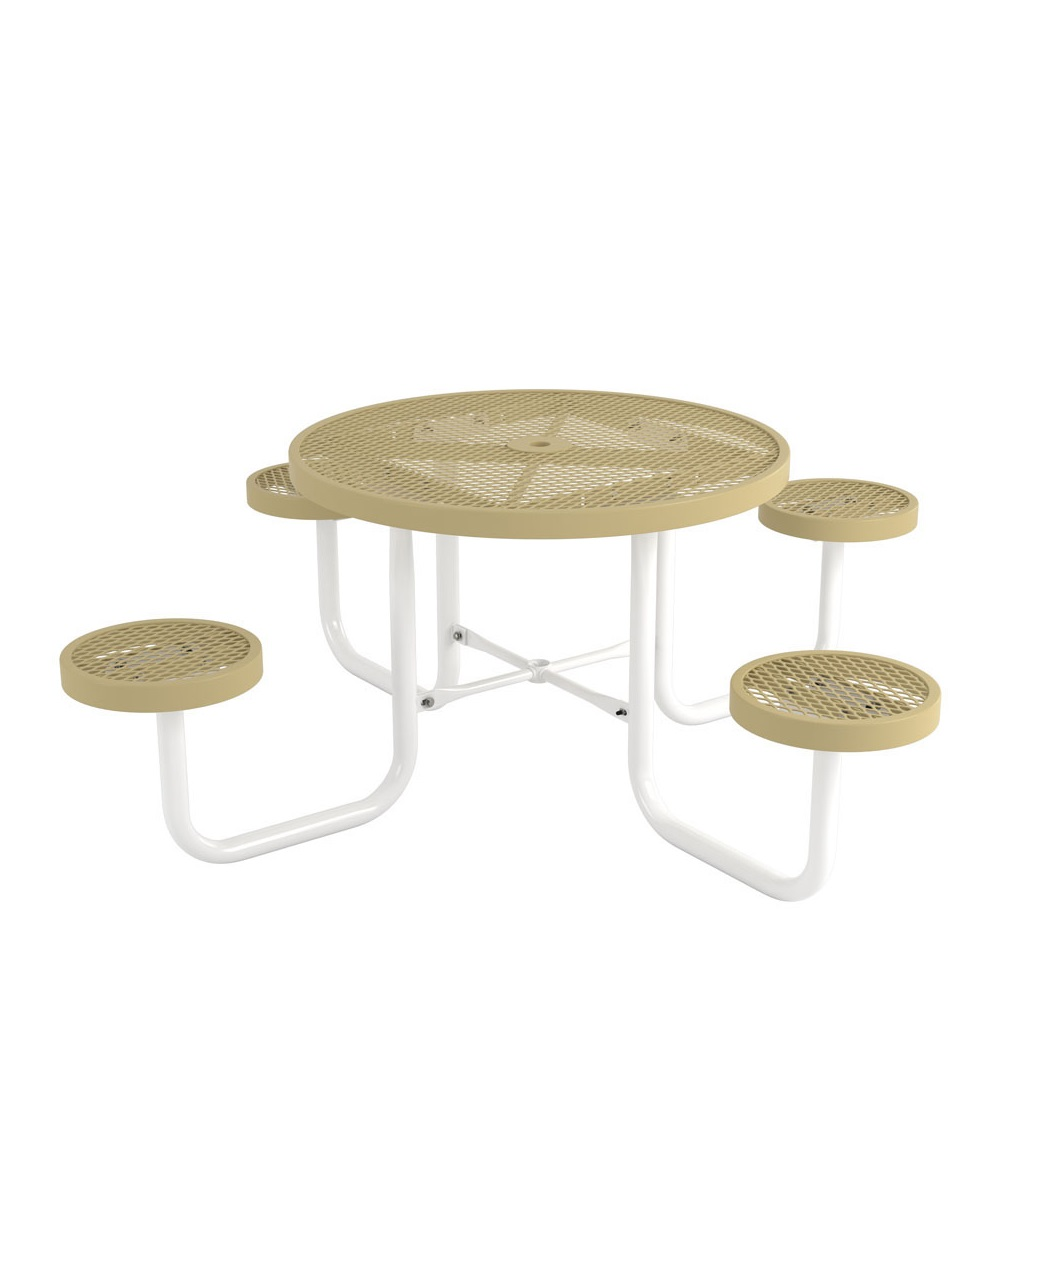 Canteen Style Round Café Table Park Warehouse - Round metal cafe table